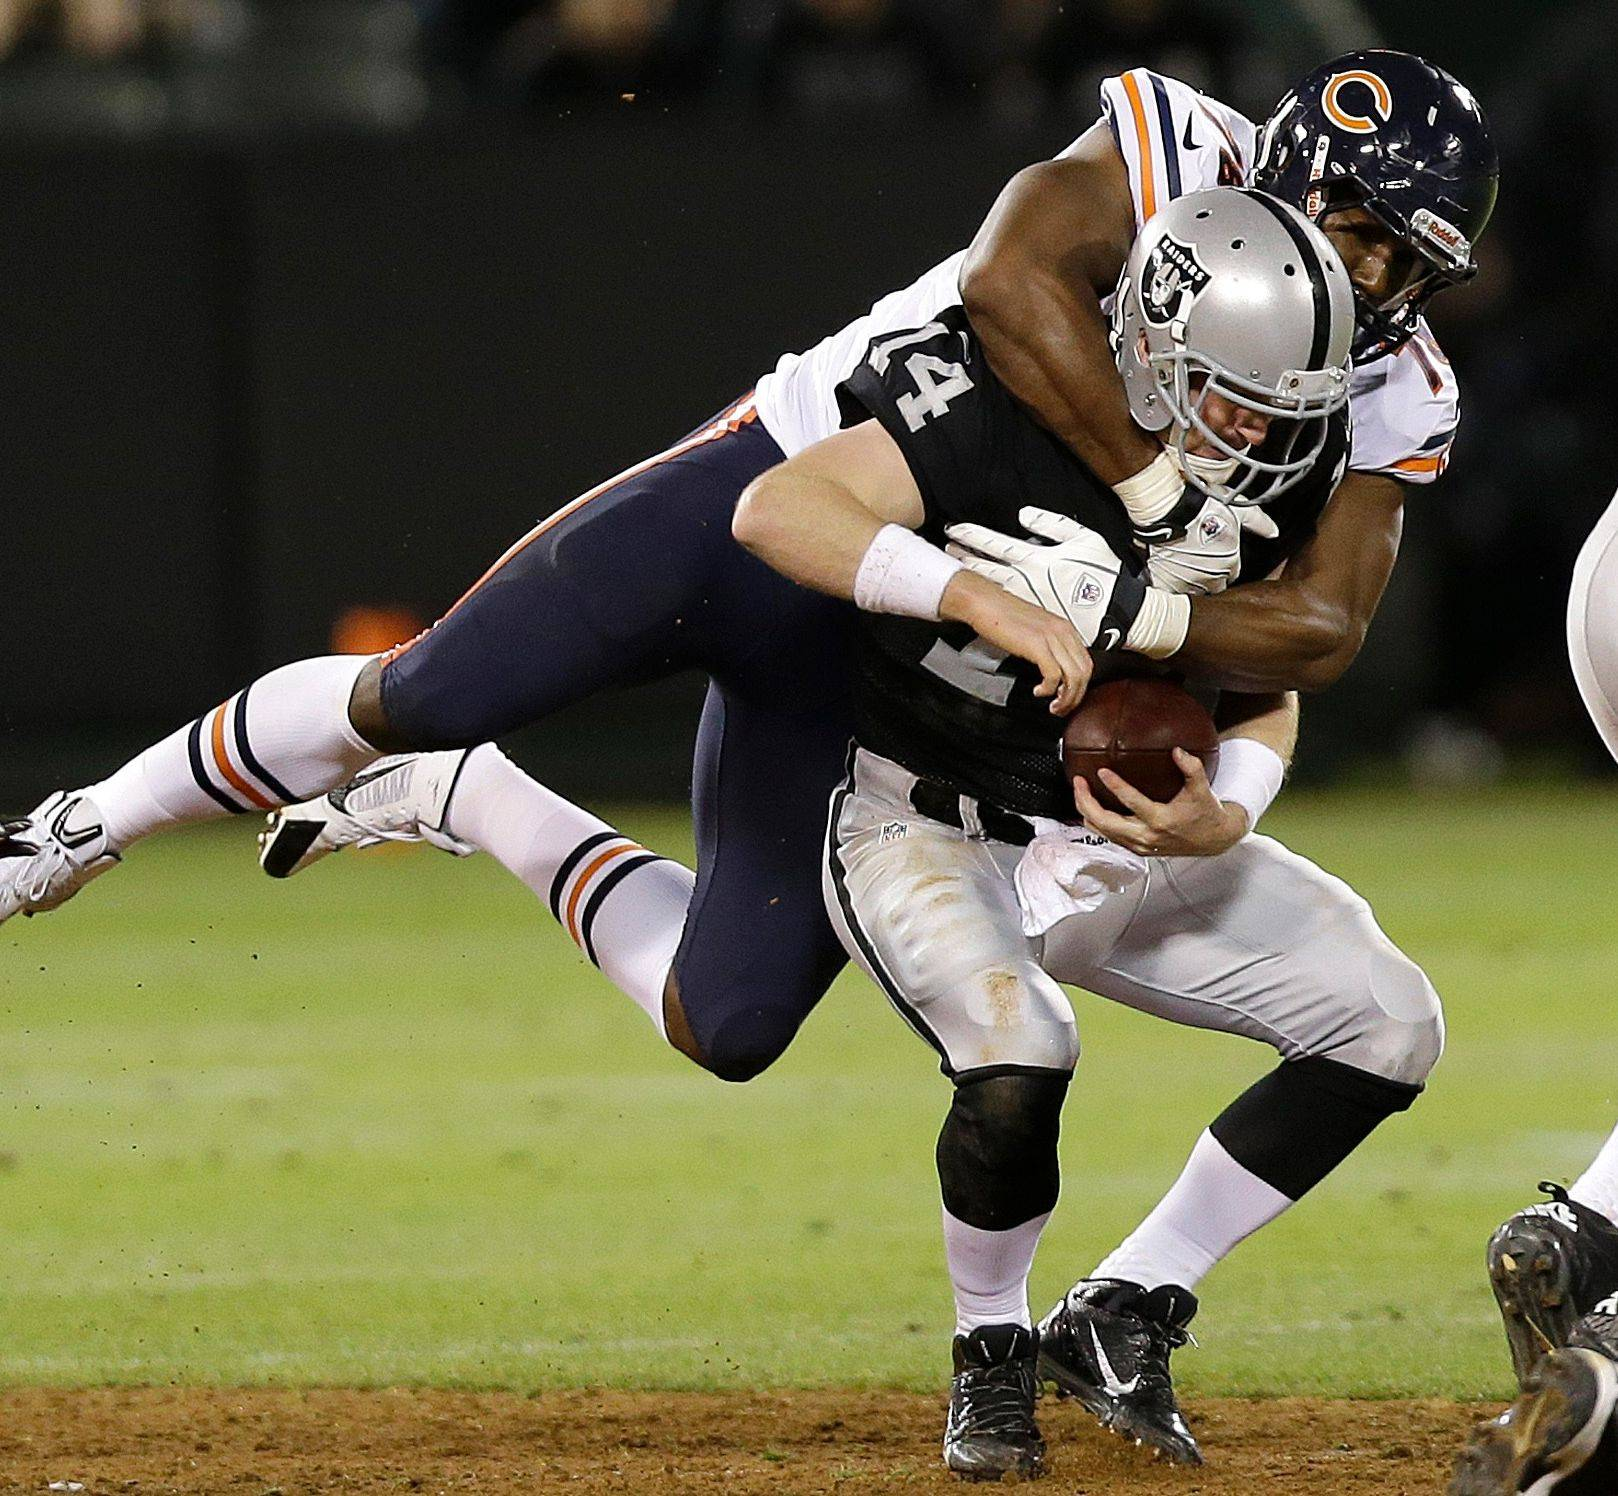 Cornelius Washington sacks Raiders quarterback Matthew McGloin during the fourth quarter of their preseason game Friday. Washington is a top contender to be kept as one of the team's defensive ends.